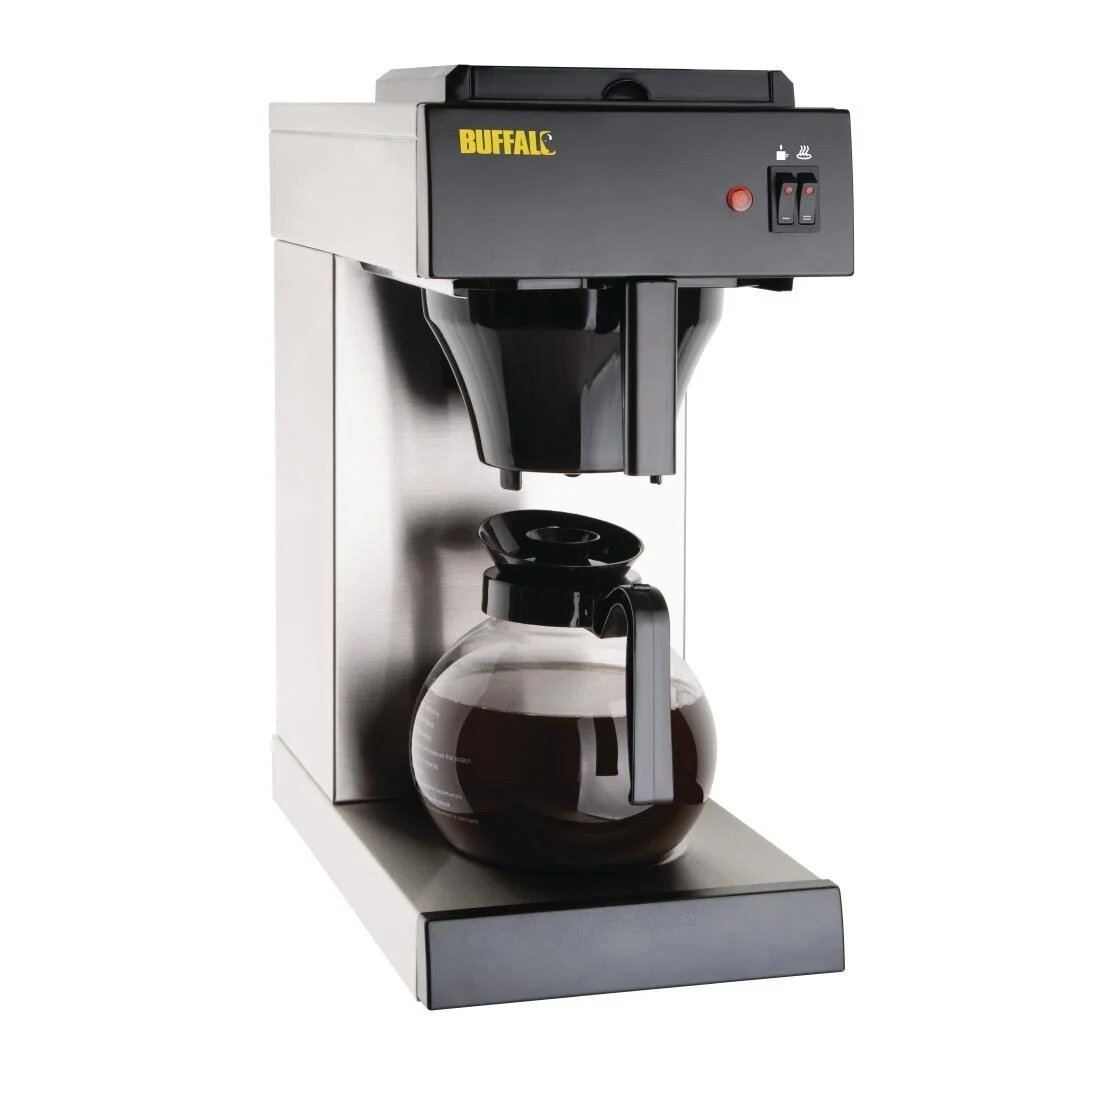 Buffalo CT815 Manual Fill Filter Coffee Machine